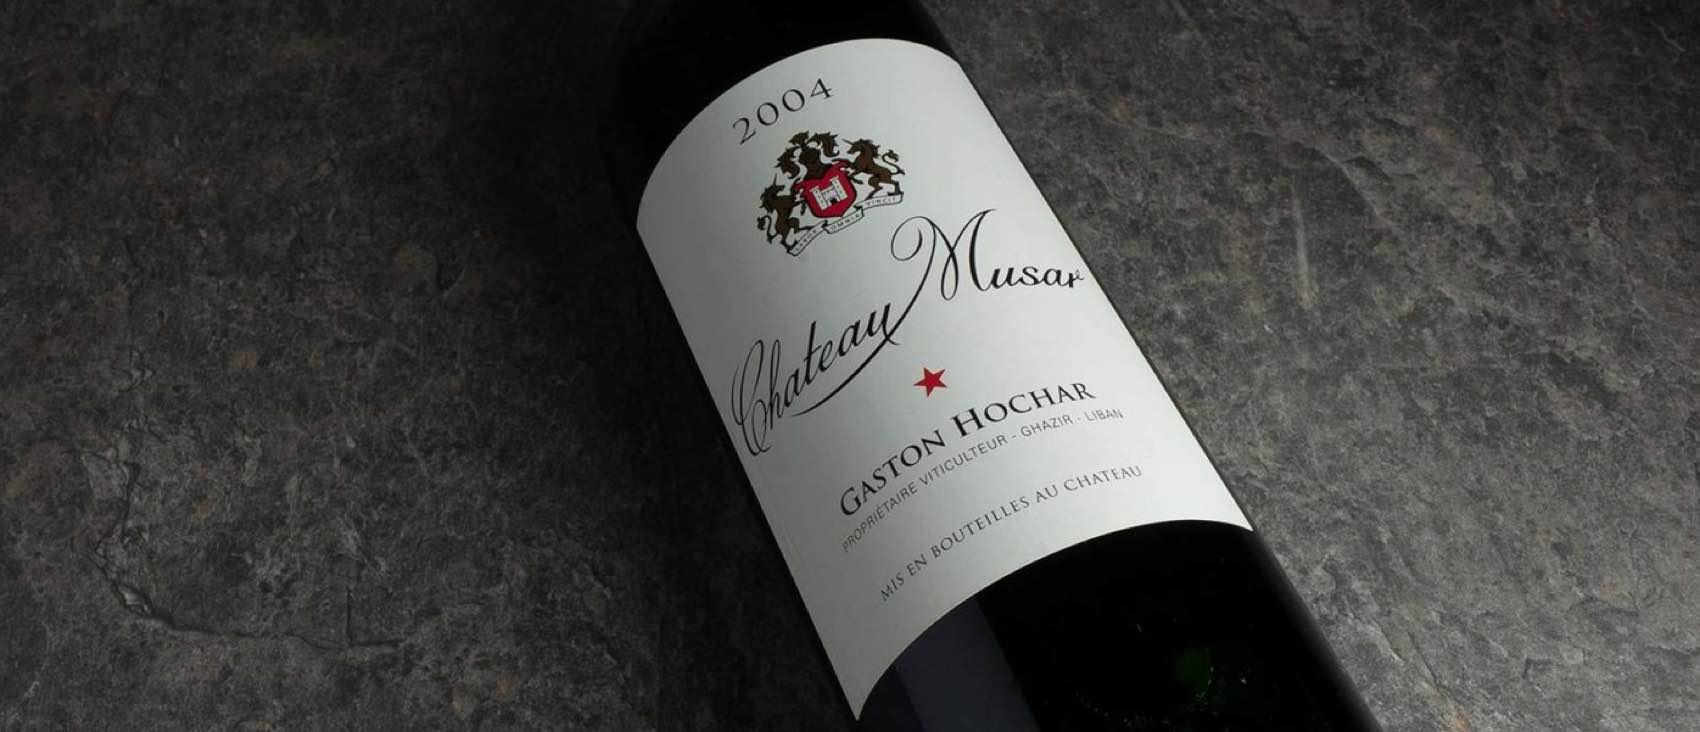 A red of Chateau Musar 2004 produced in Lebanon – normally sold on auctions